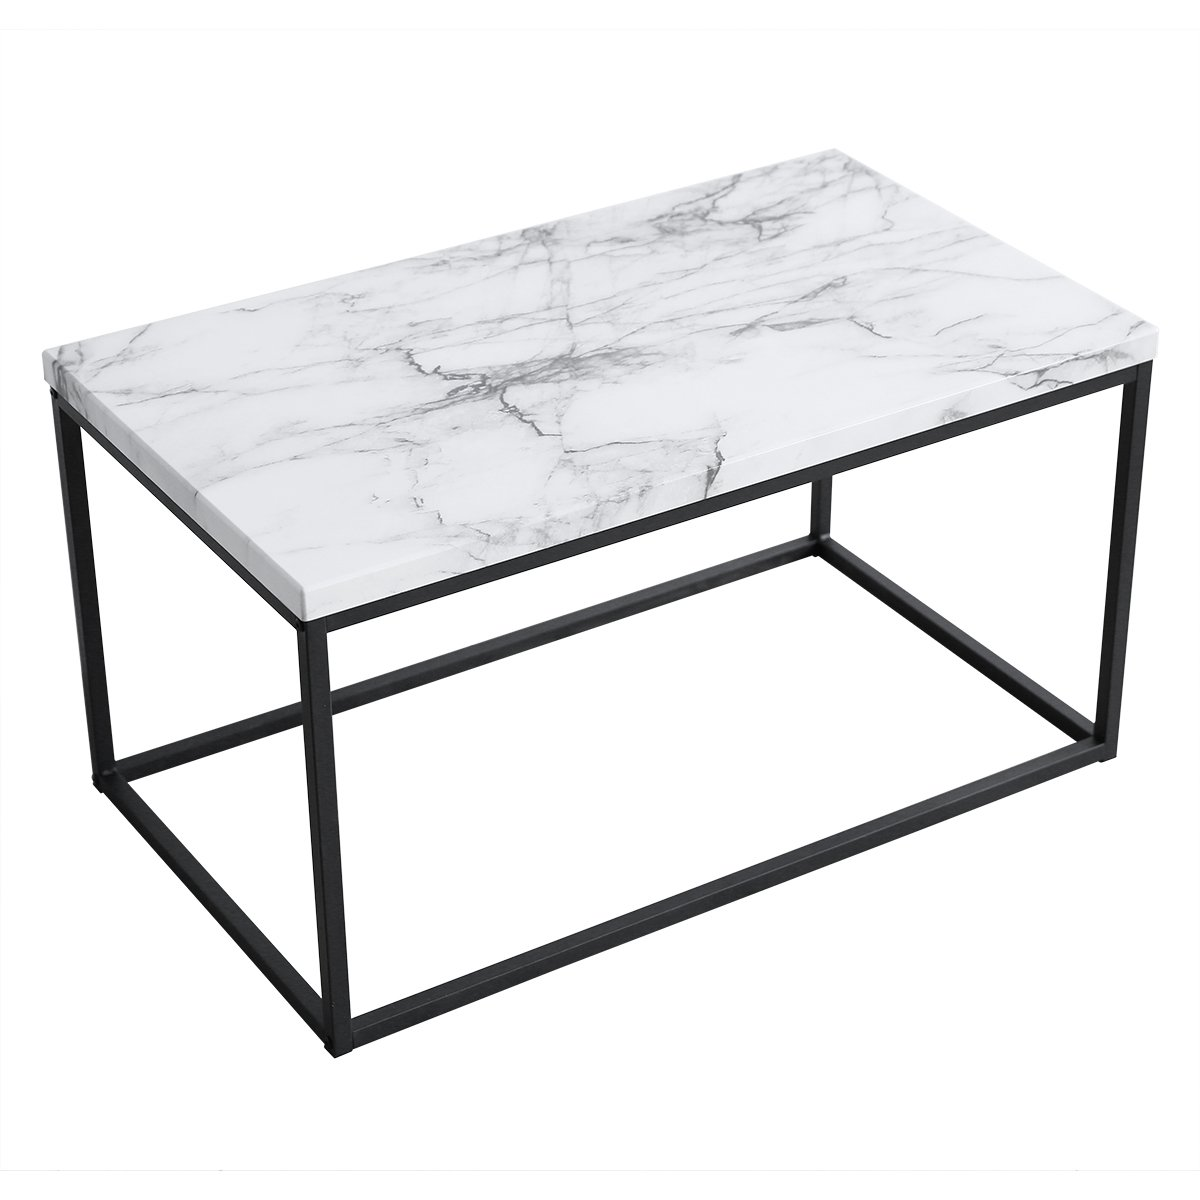 Roomfitters White Marble Print Coffee Table, Upgraded Water Resistant Version, Accent Rectangular Cocktail Table with Black Metal Box Frame by Roomfitters